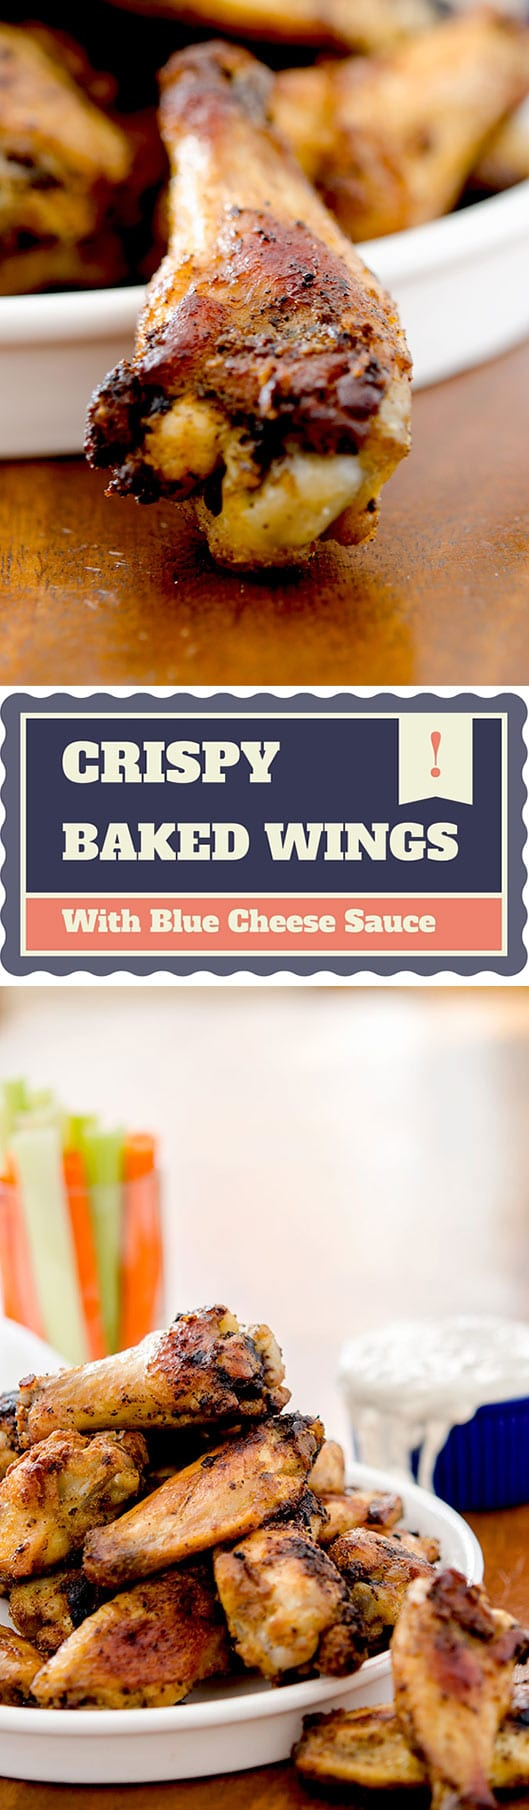 Sink your teeth into these crispy baked chicken wings made with a spicy dry rub and finished with a cooling blue cheese sauce.